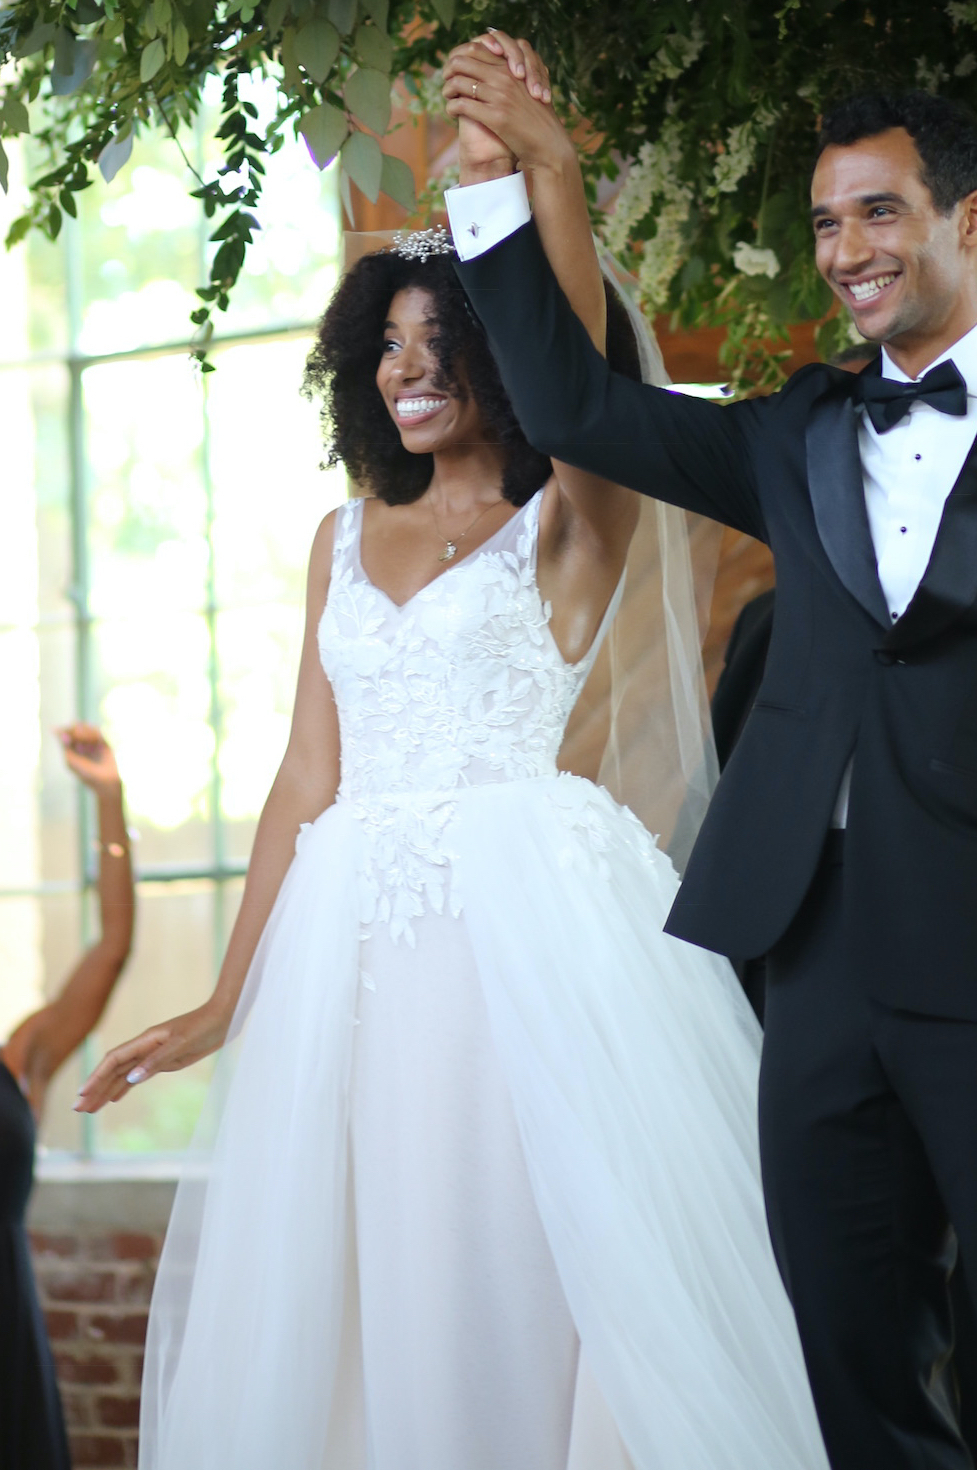 Bride customized her wedding dress with Anomalie Online Wedding Dresses with v-neck, lace, and overskirt.